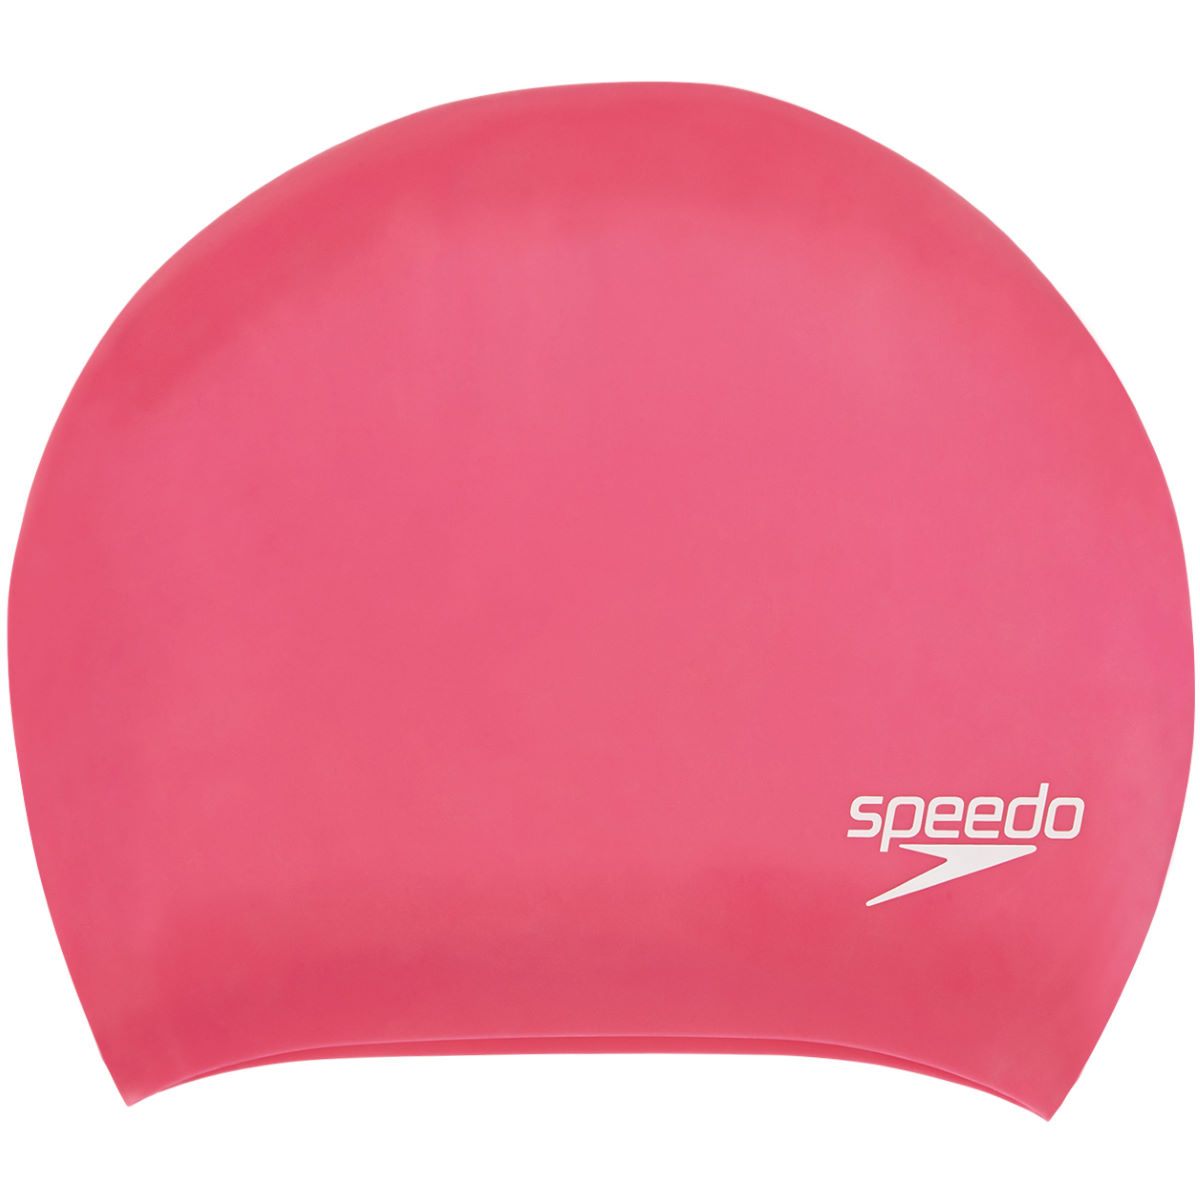 Image of Bonnet de natation Speedo (cheveux longs) - One Size Ecstatic